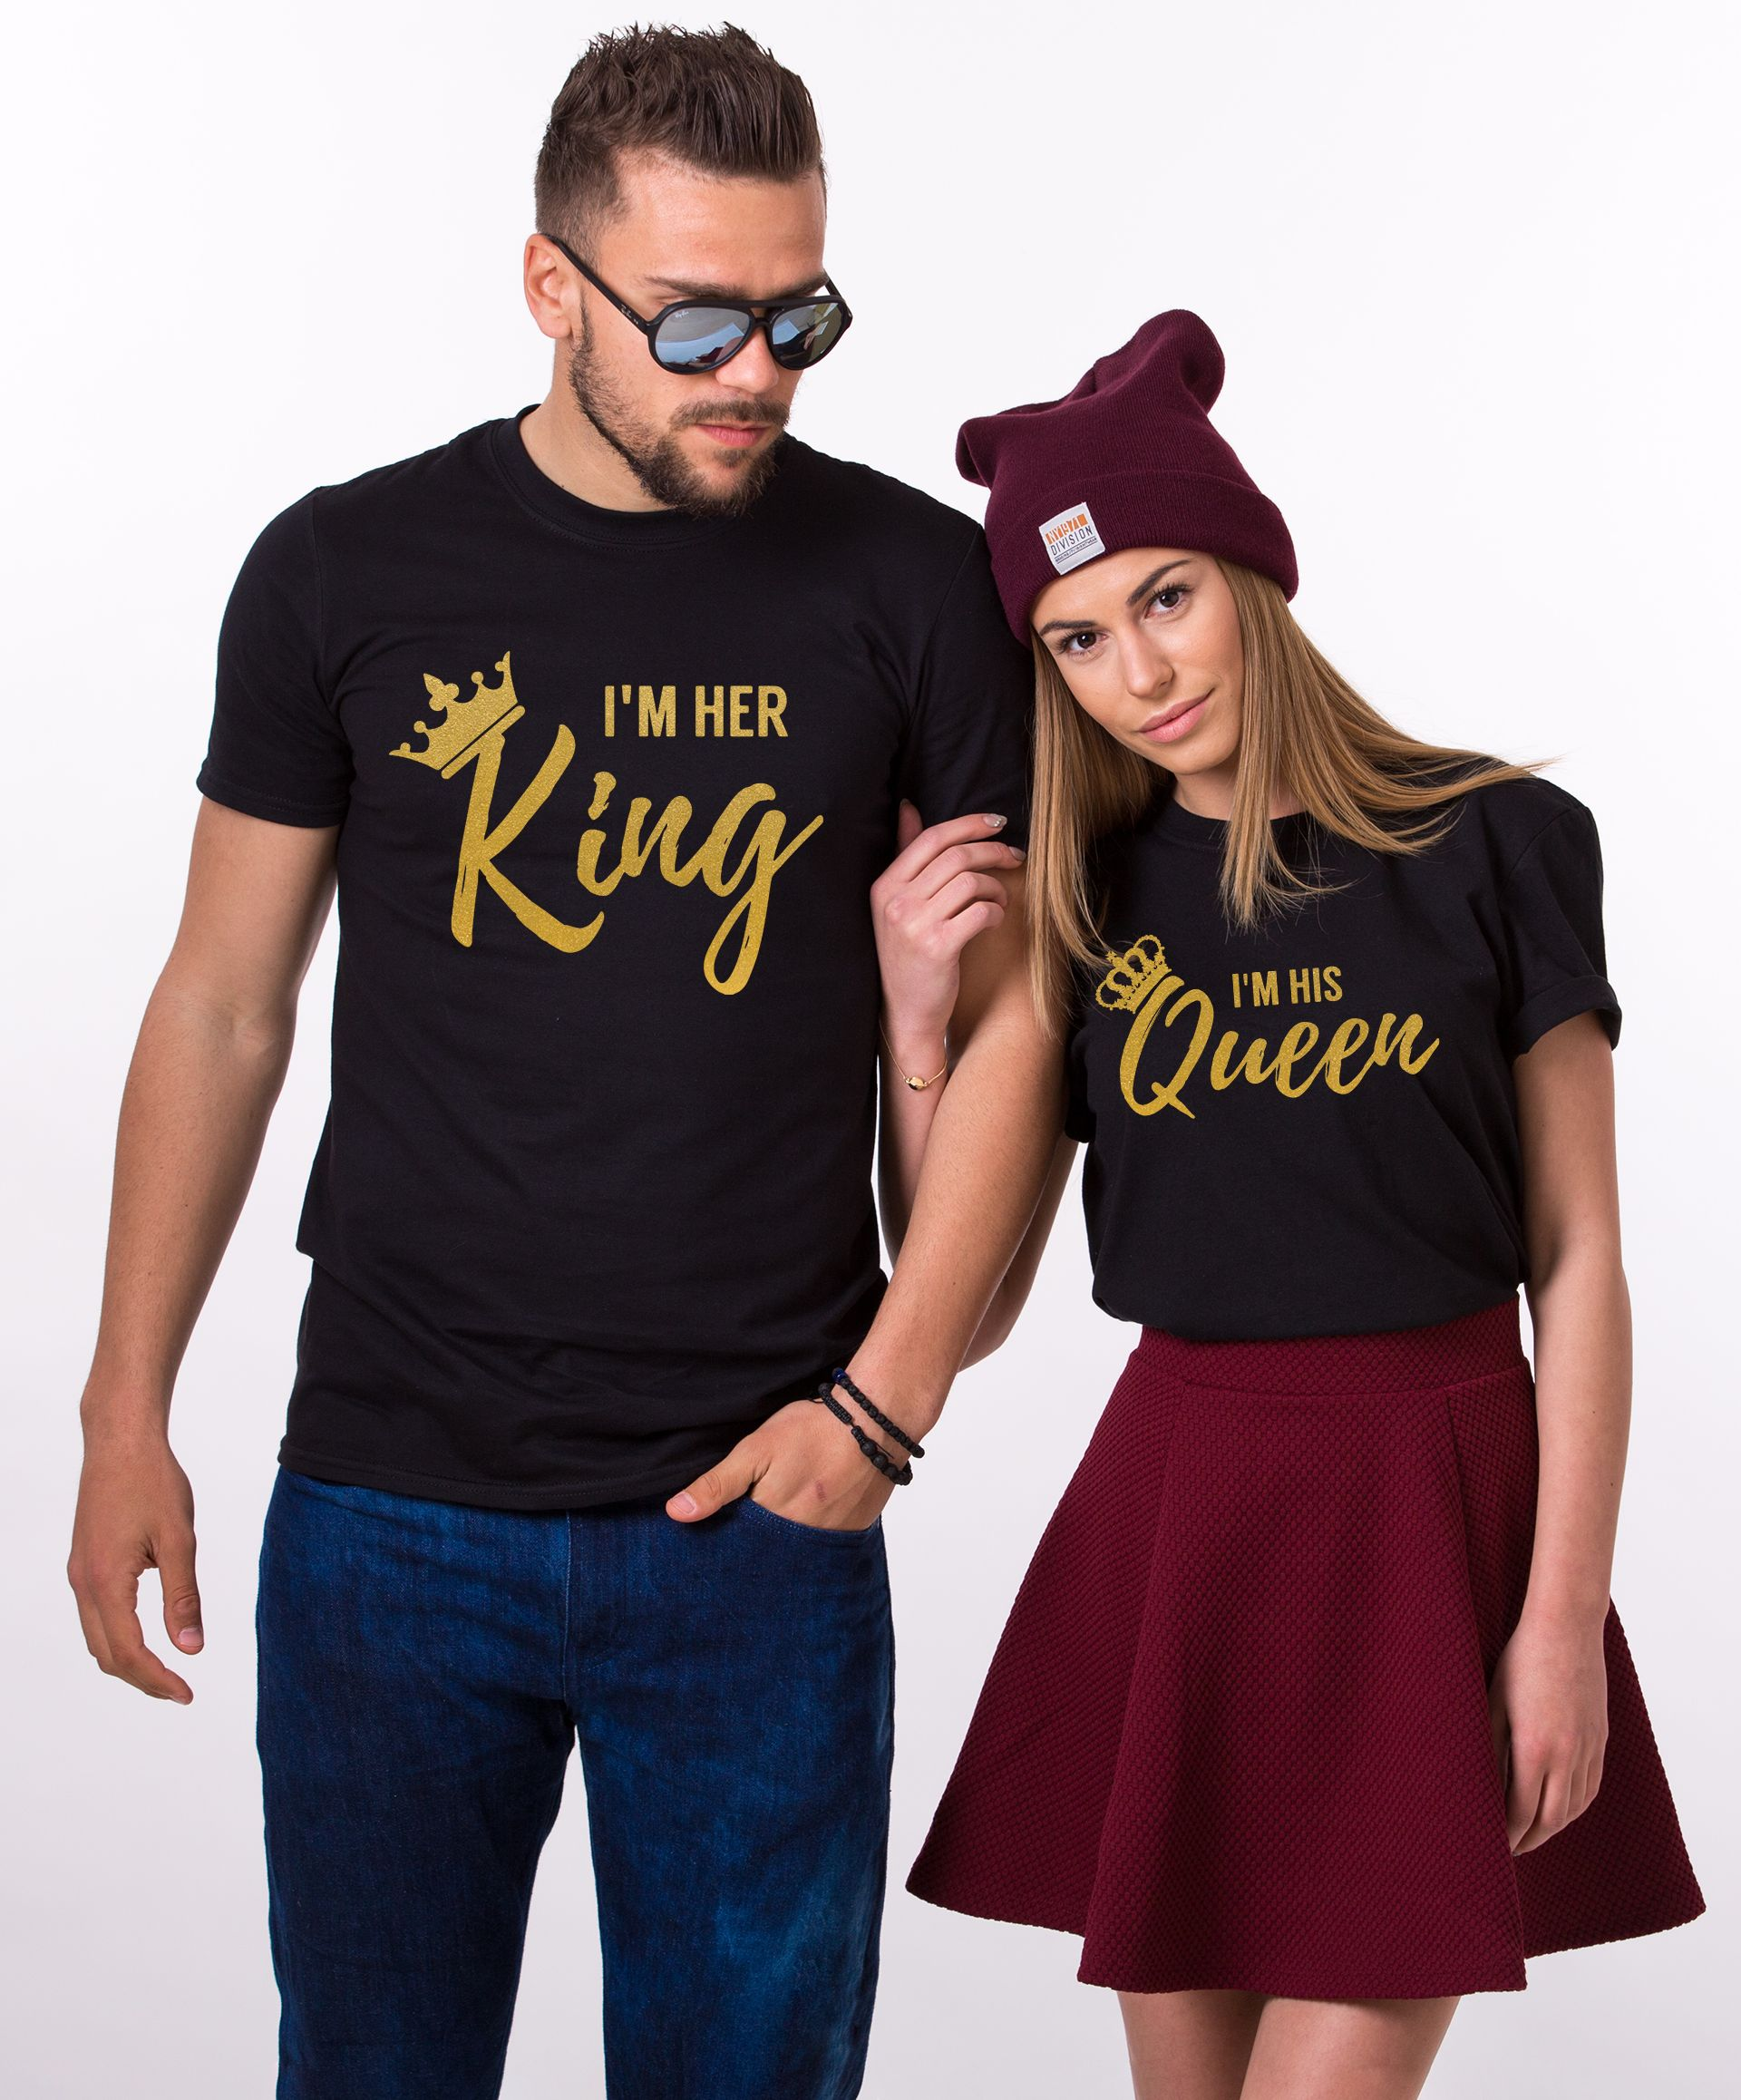 Her King His Queen Shirts Matching Couples Shirts